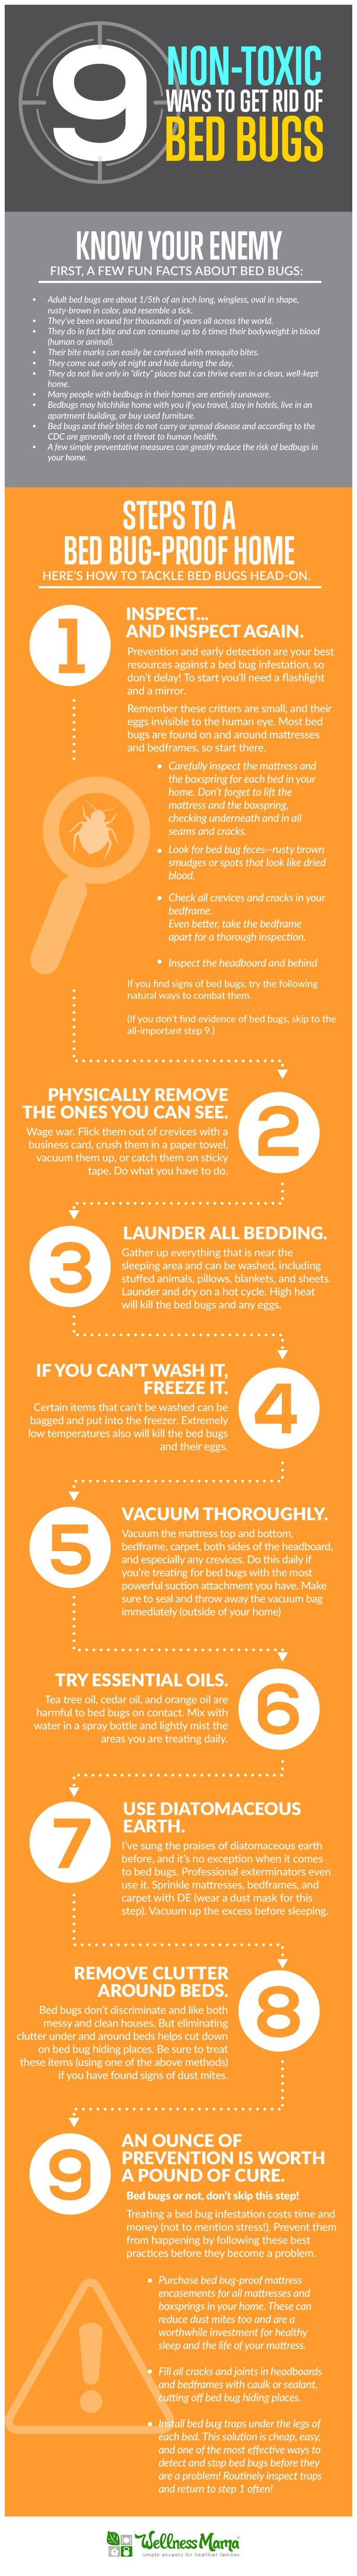 How To Kill Bed Bugs Using Home Remedies